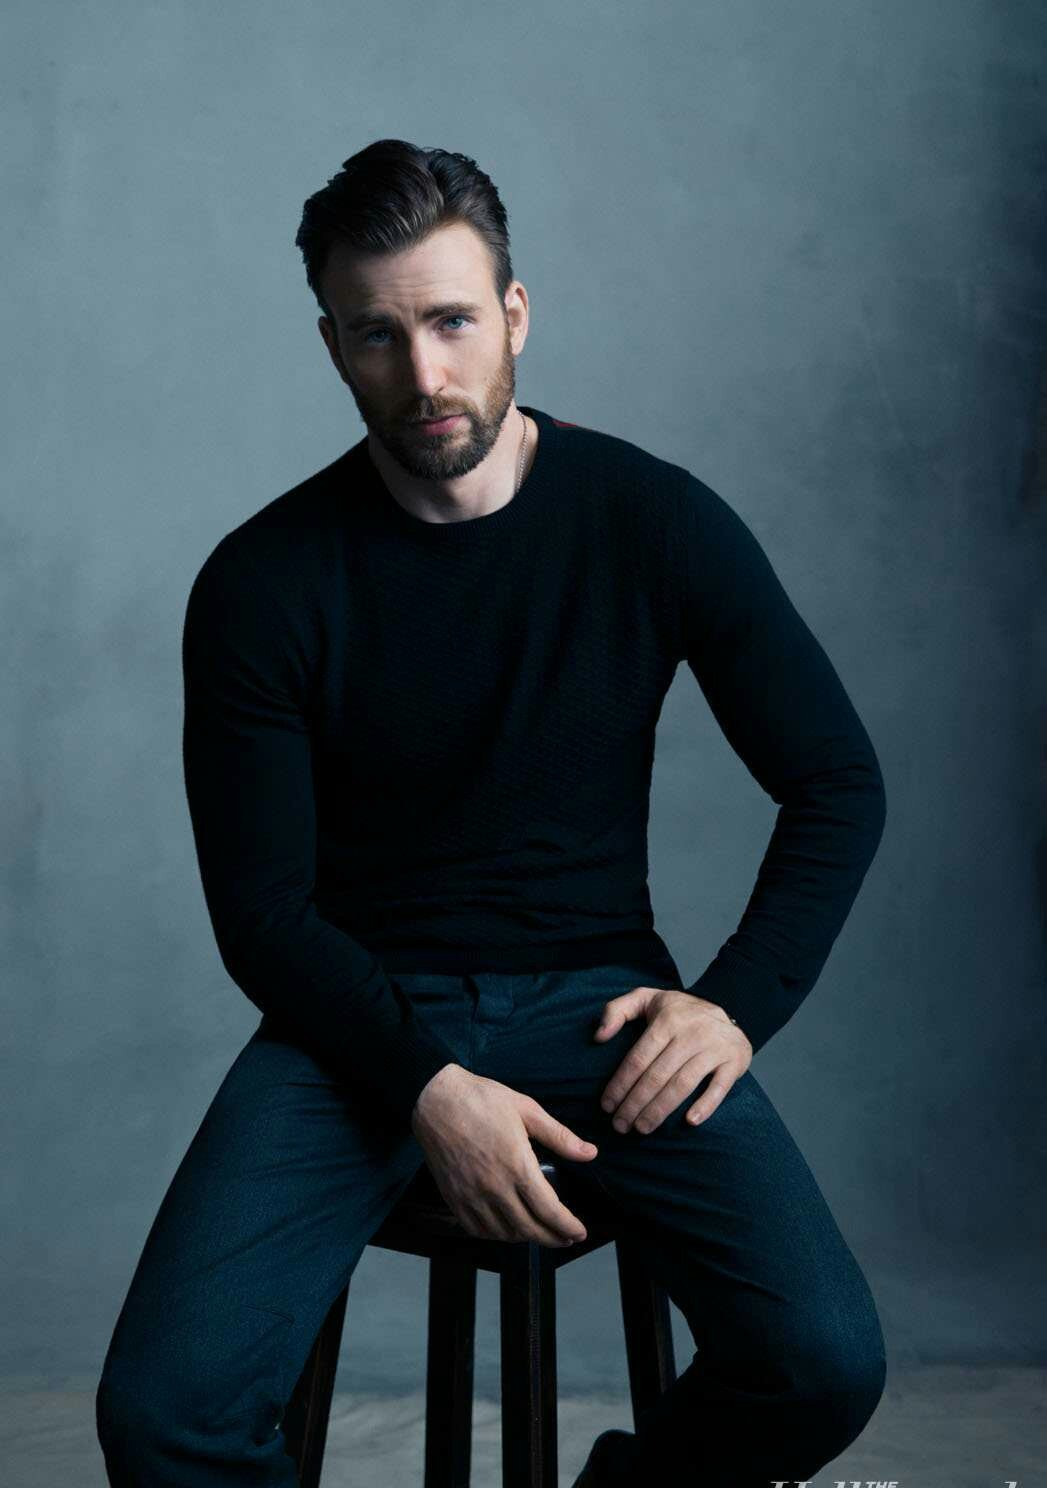 Happy Birthday To A Marvelous Actor Chris Evans!!